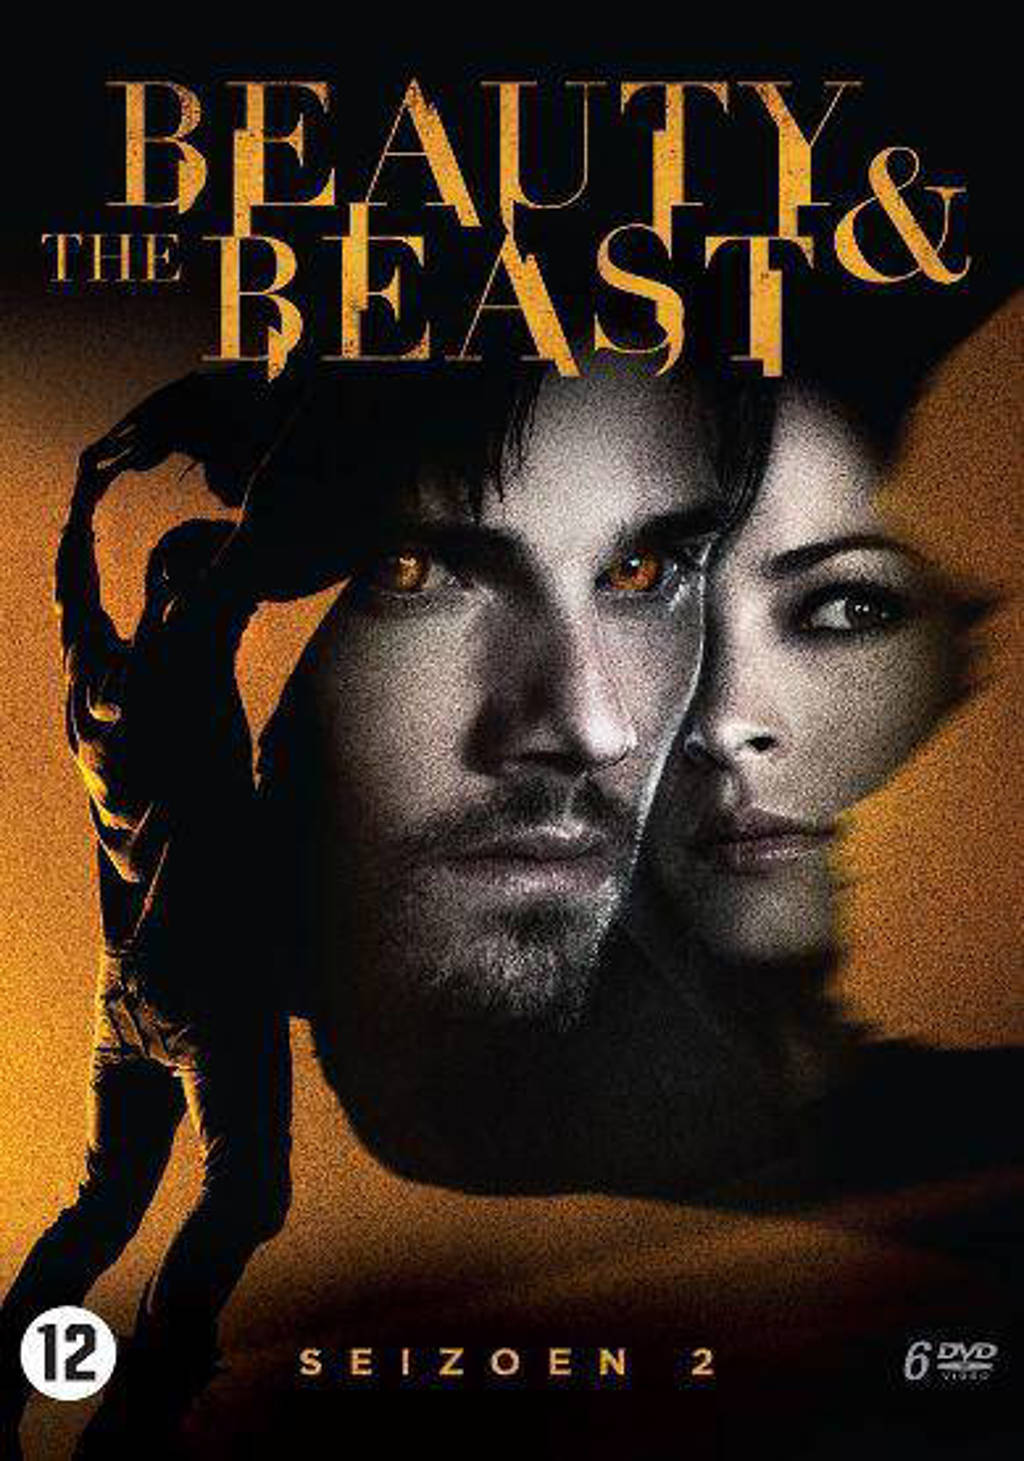 Beauty And The Beast Seizoen 2 Dvd Wehkamp